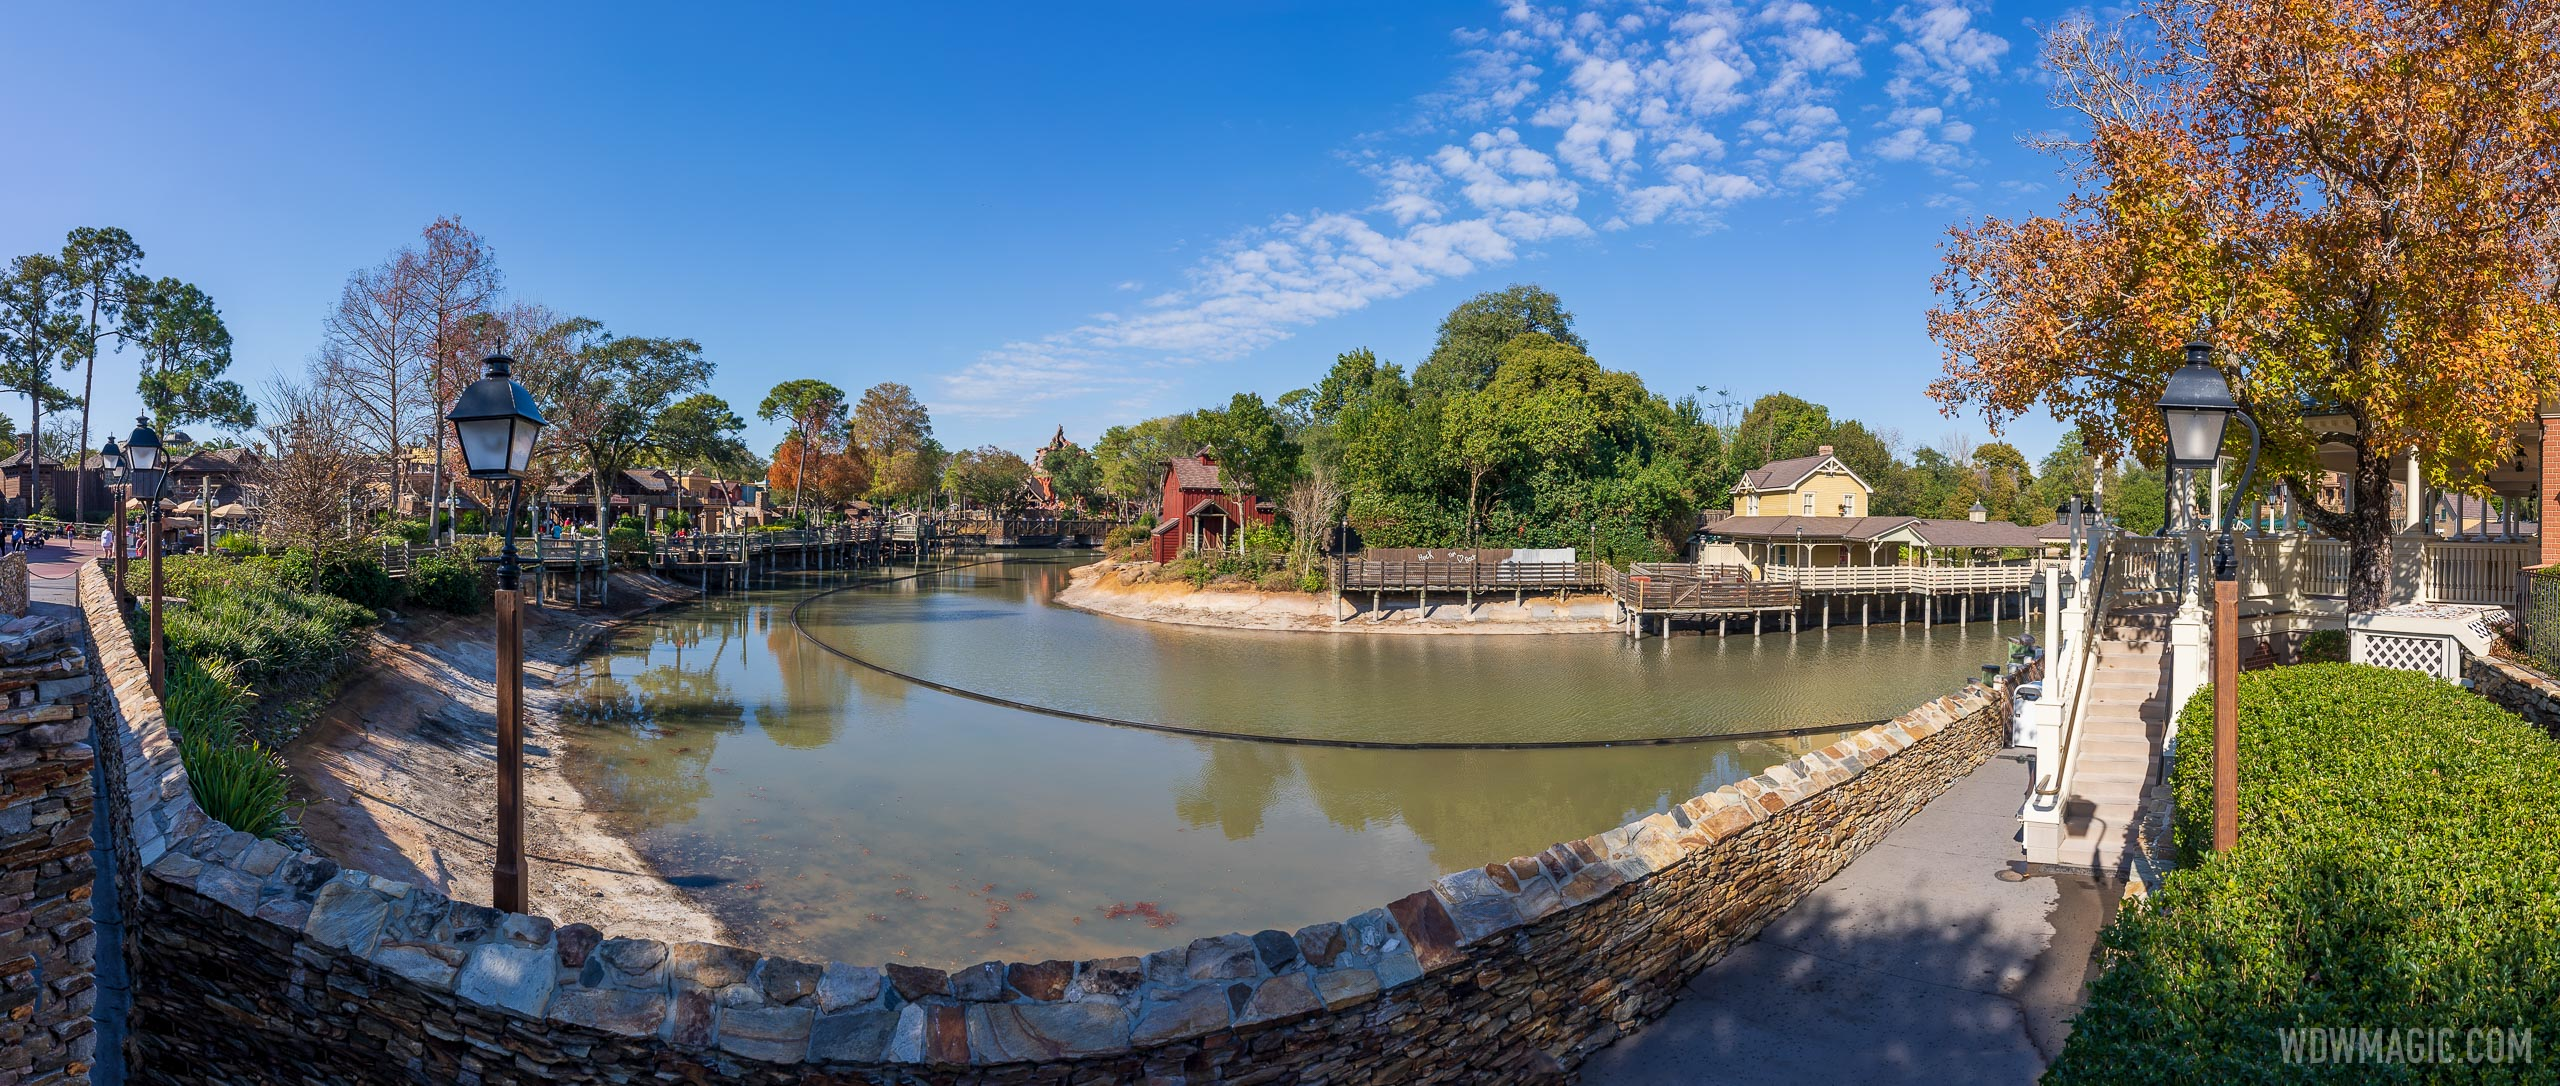 Refilling the Rivers of America has been underway for the last week